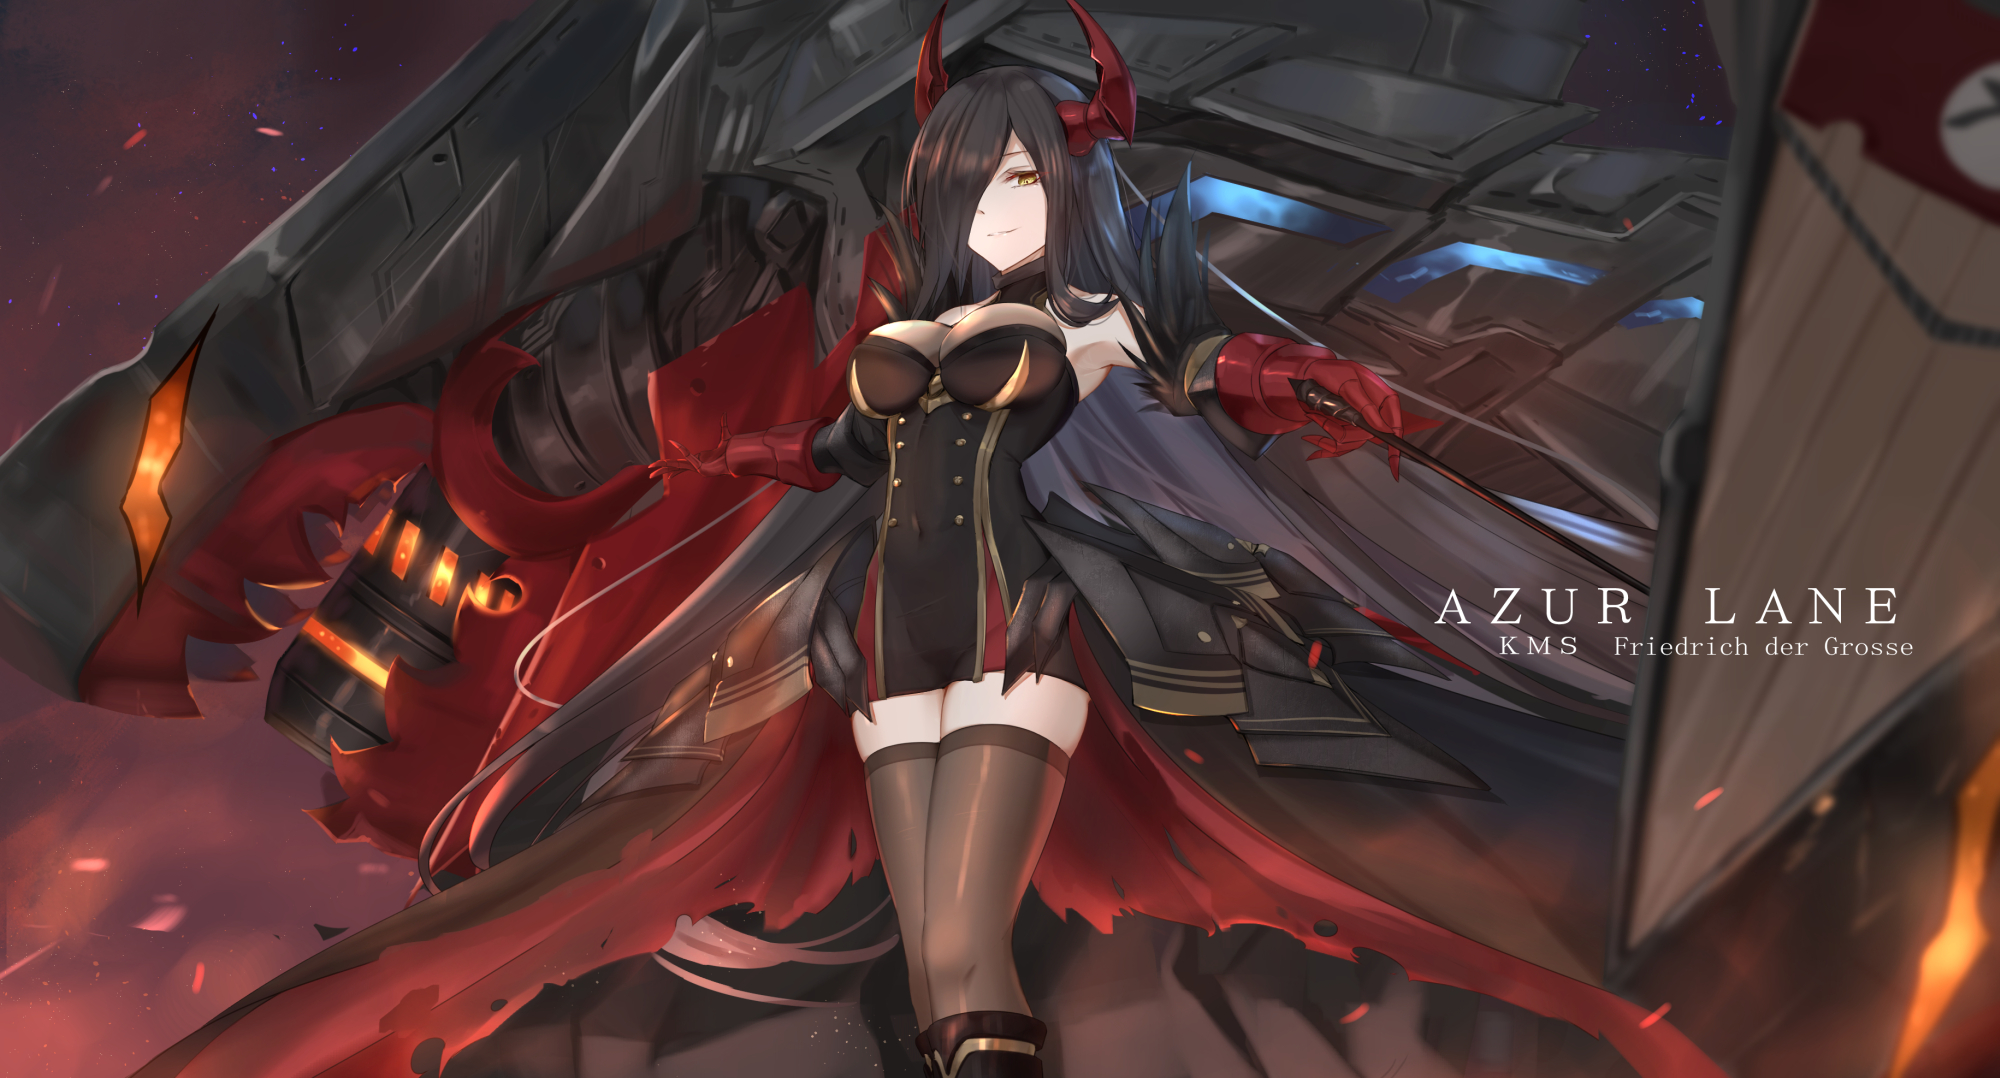 Anime 2000x1078 Friedrich der Grosse Azur Lane video games video game girls anime girls black hair long hair yellow eyes horns smiling cleavage dress stockings bokeh dragon fantasy girl fantasy art artwork digital art drawing 2D fan art demon girls